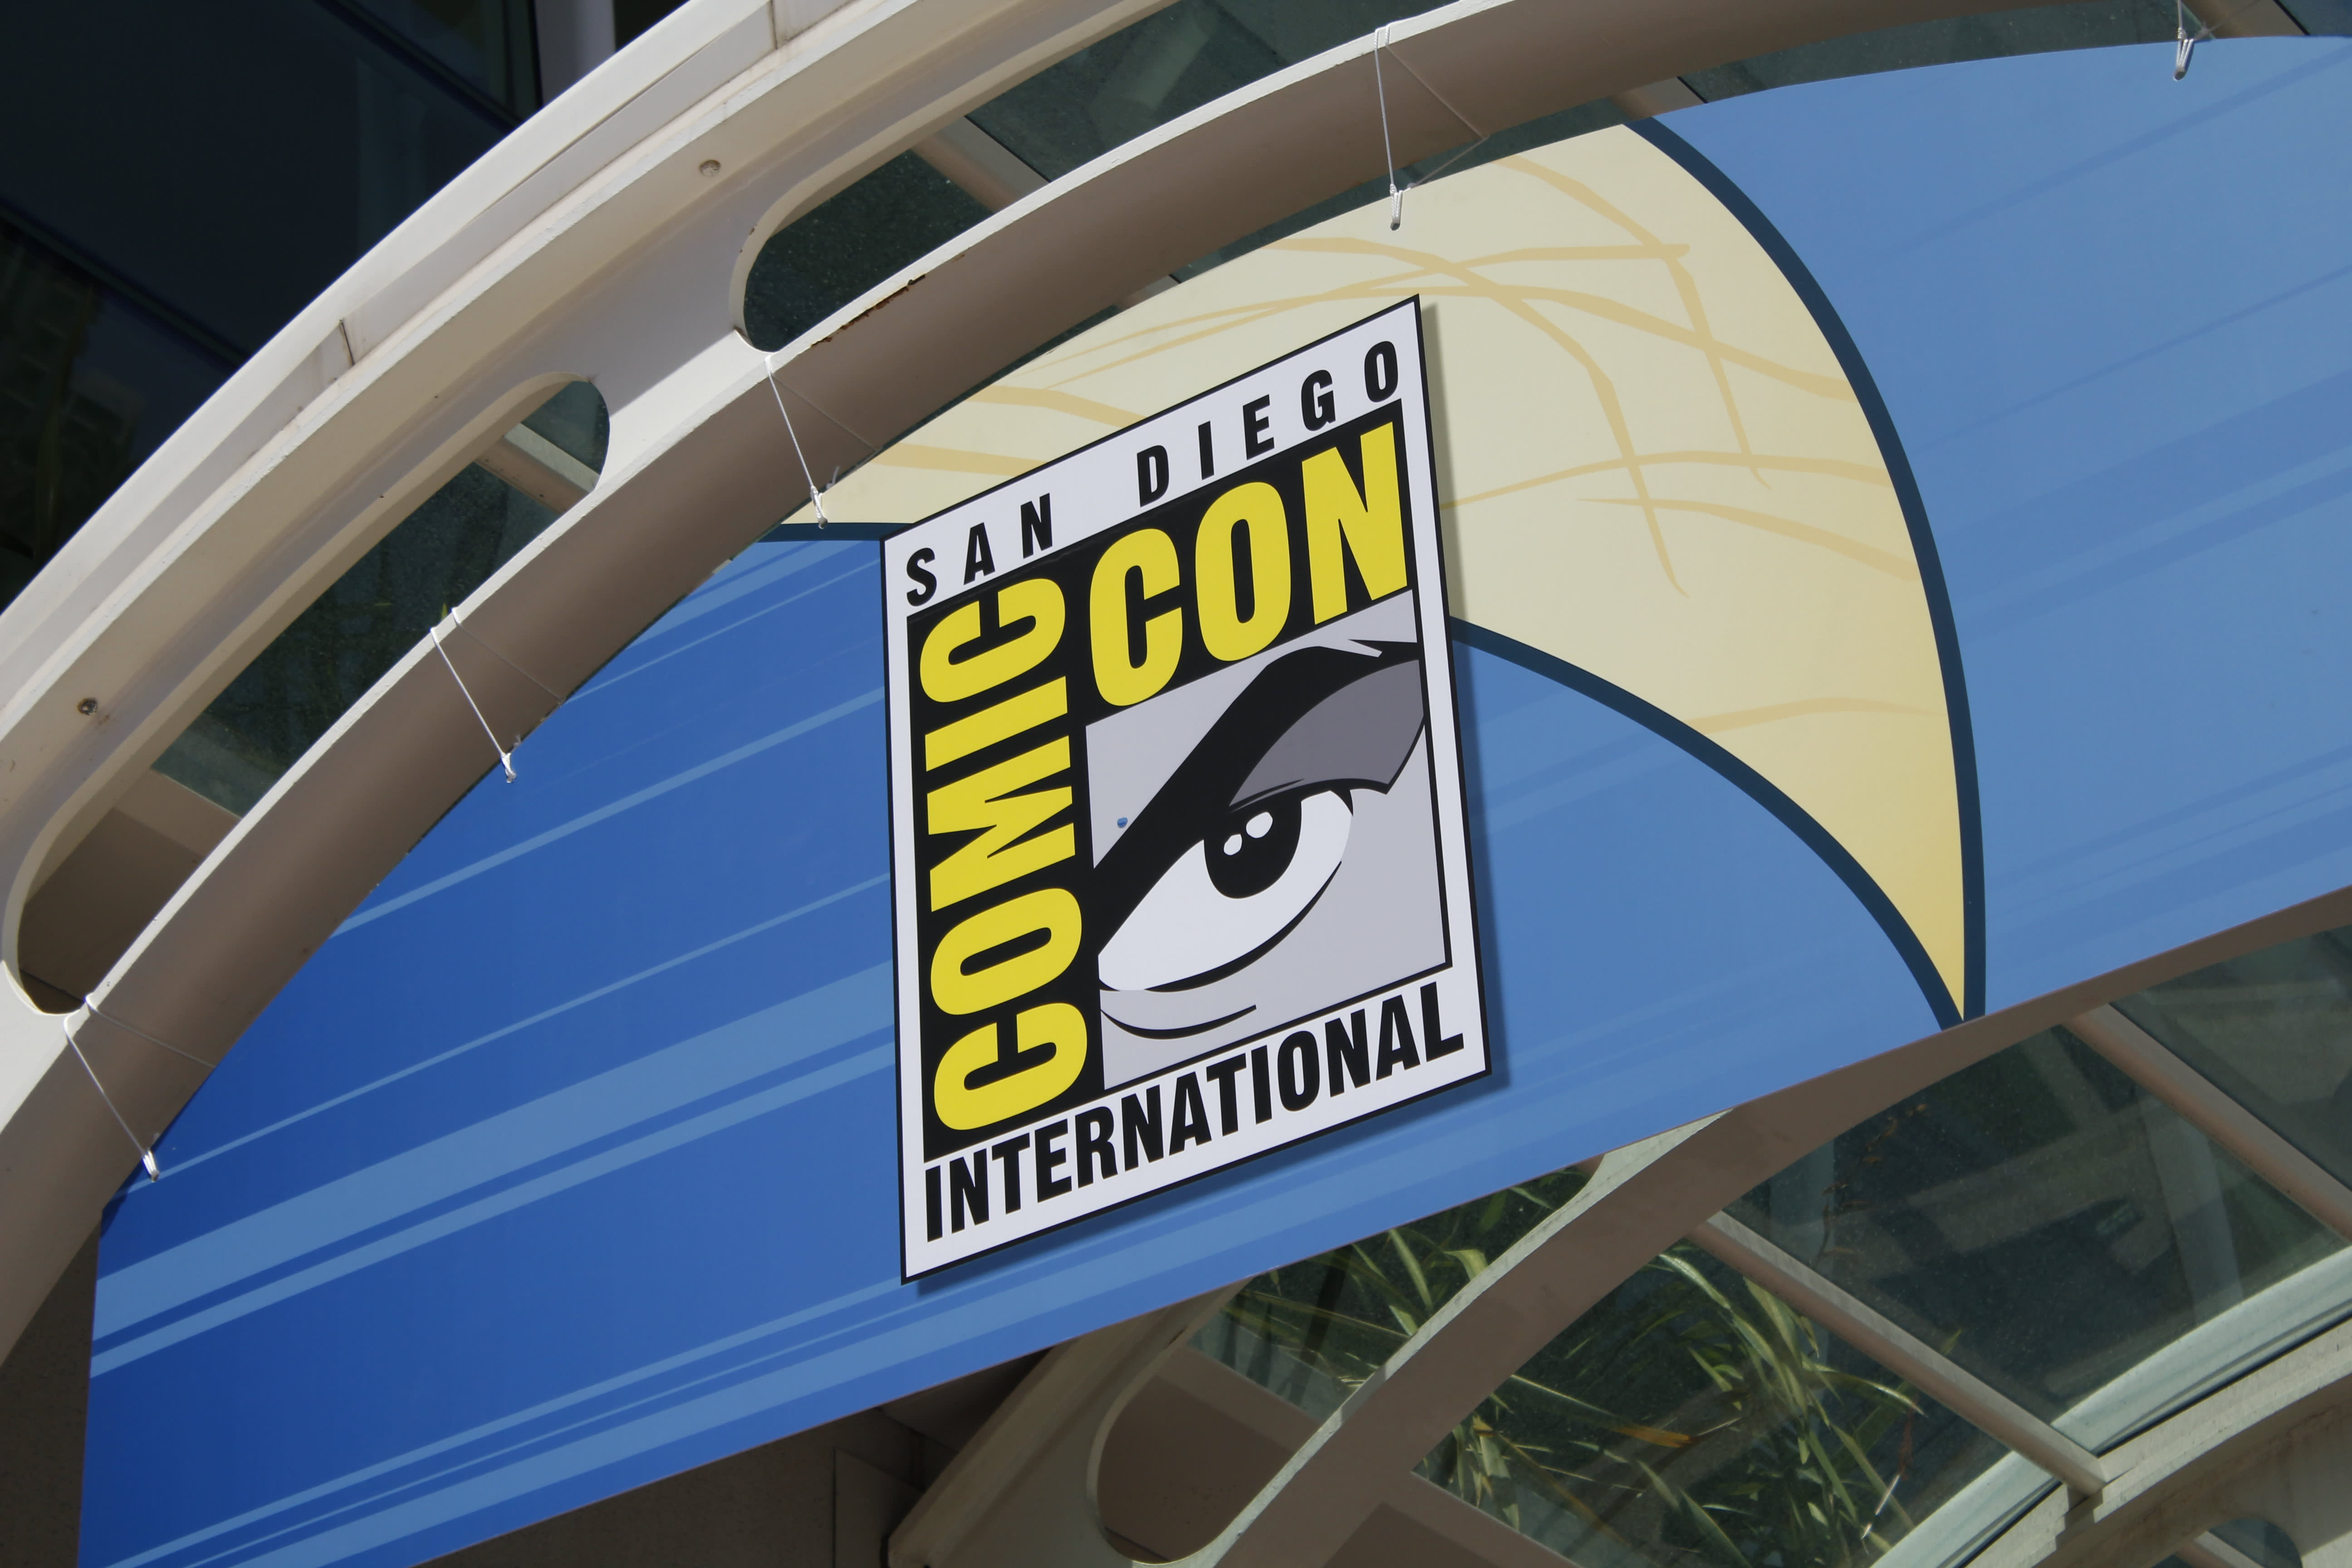 San Diego Comic-Con sets sights on Thanksgiving weekend, sparking backlash from fans and talent